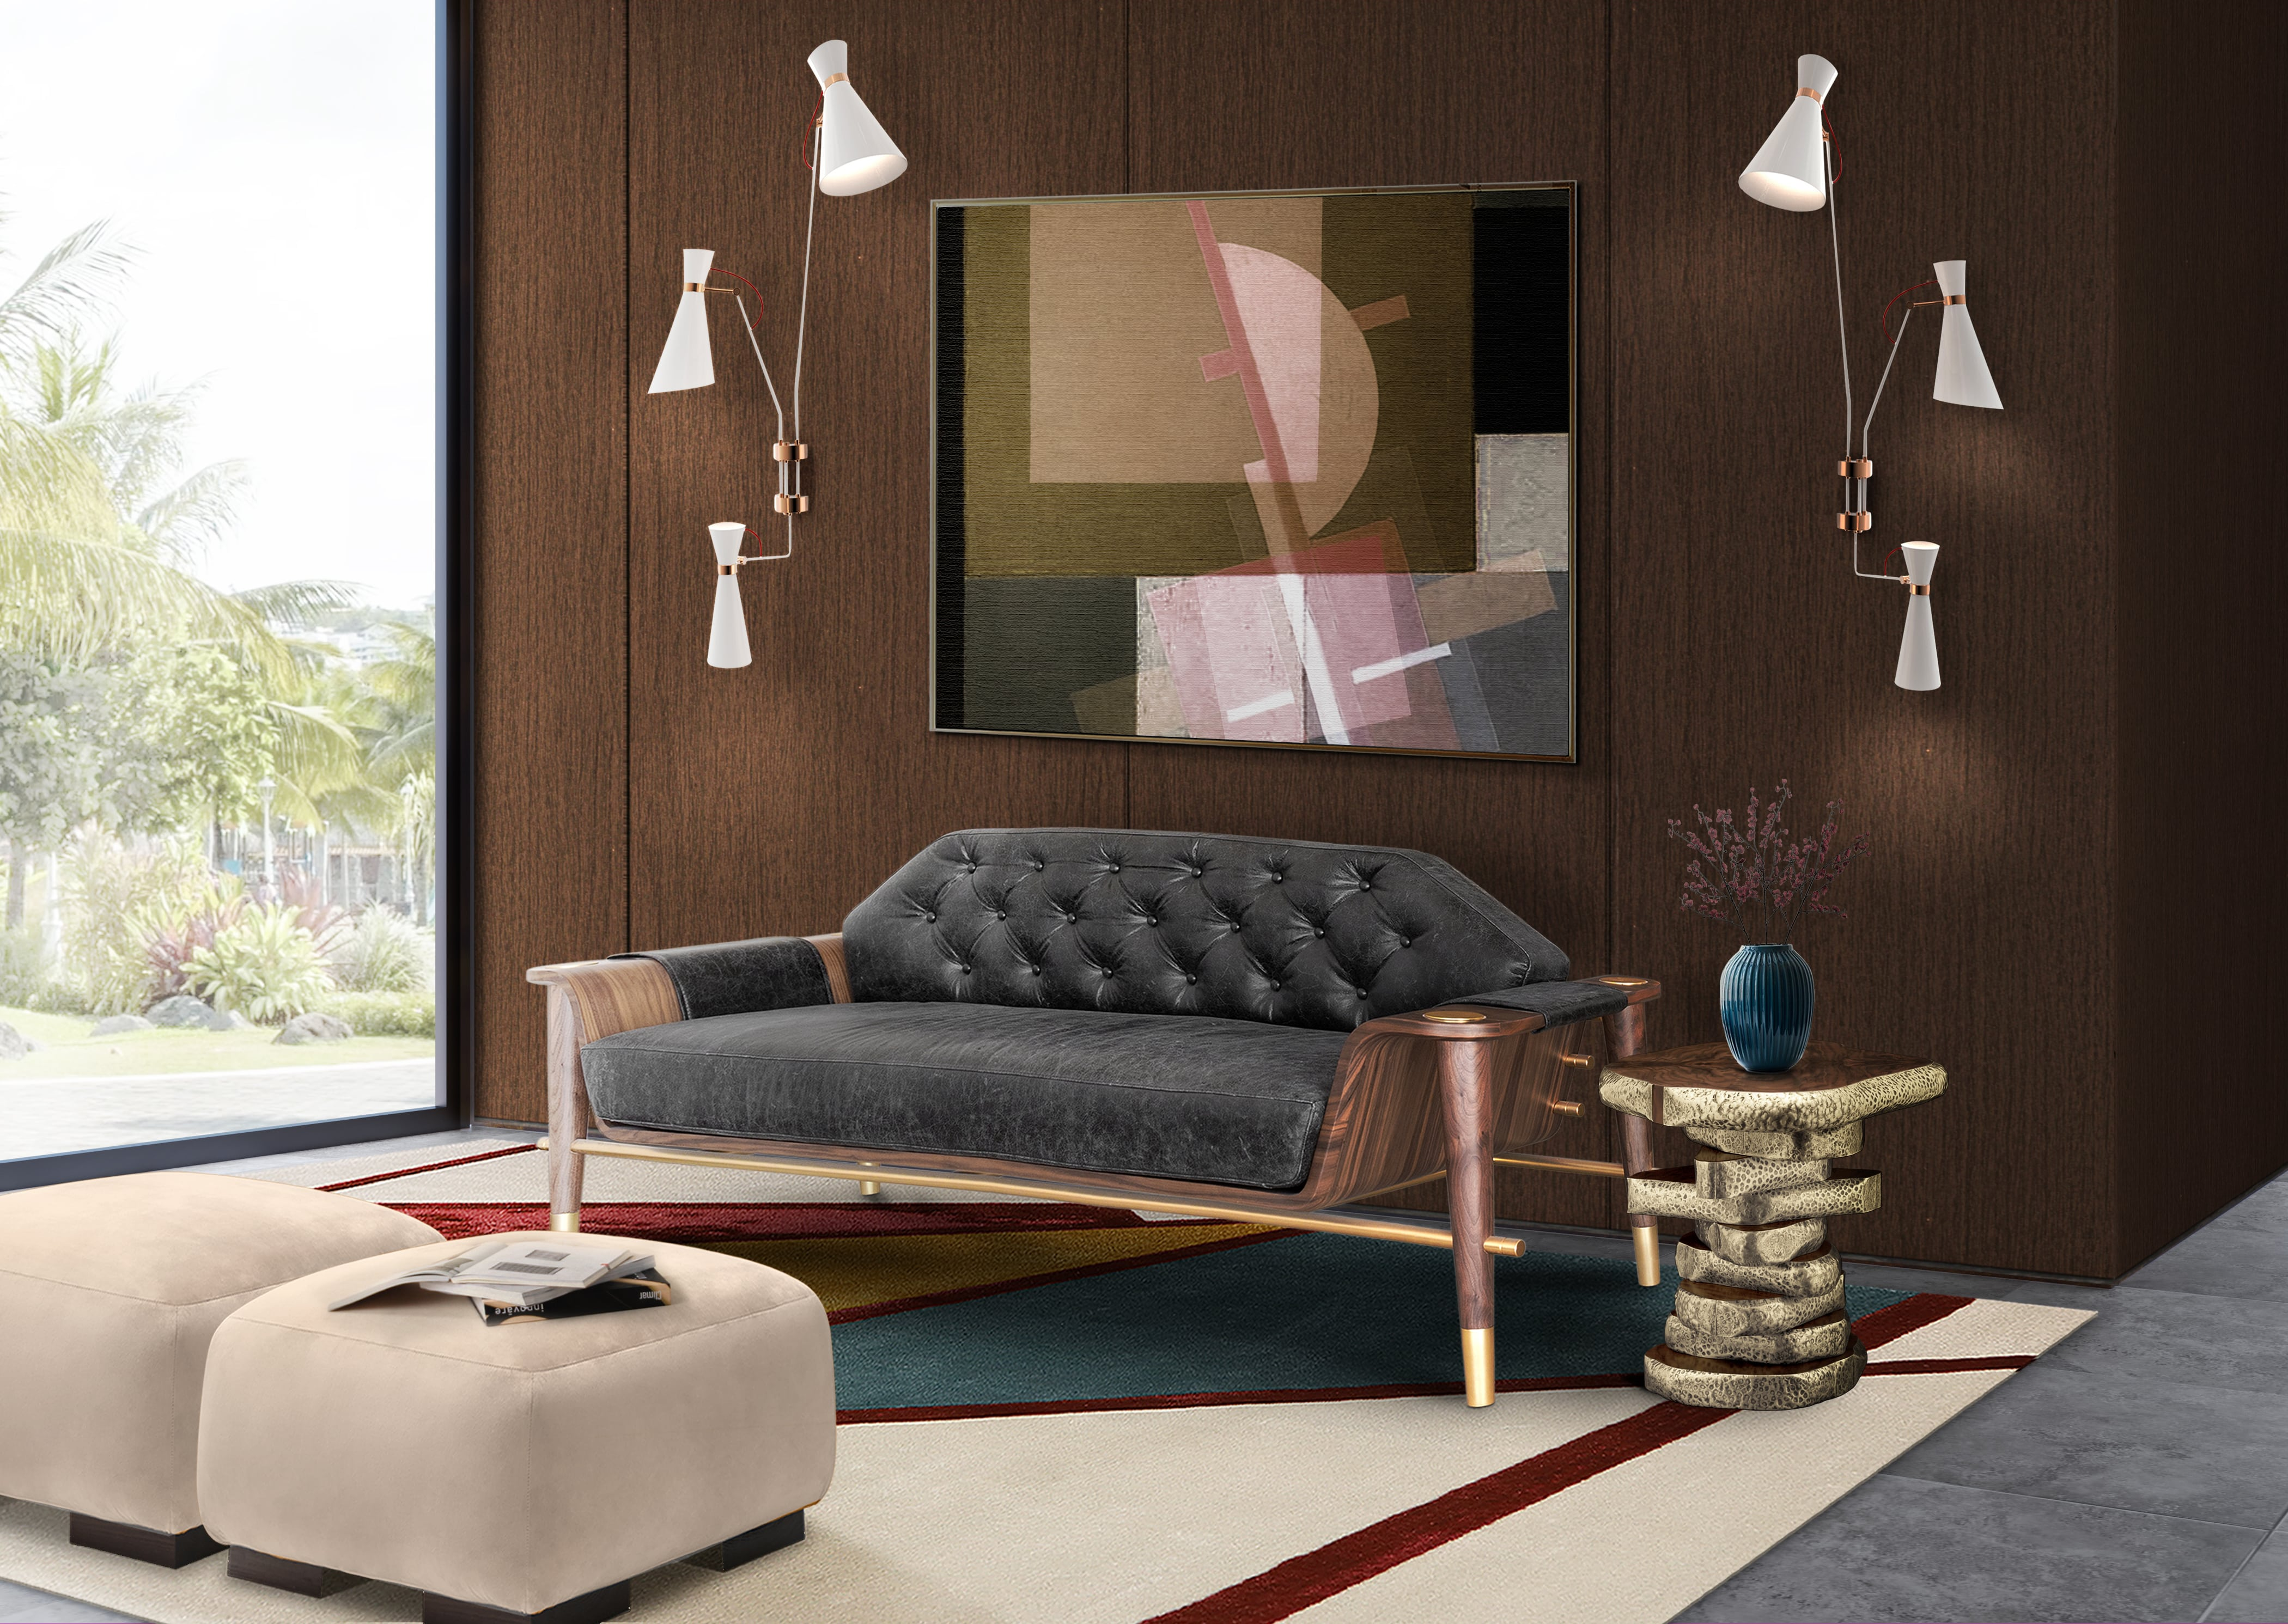 Rug'Society Eclectic BAUHAU Living Room by Rug'Society